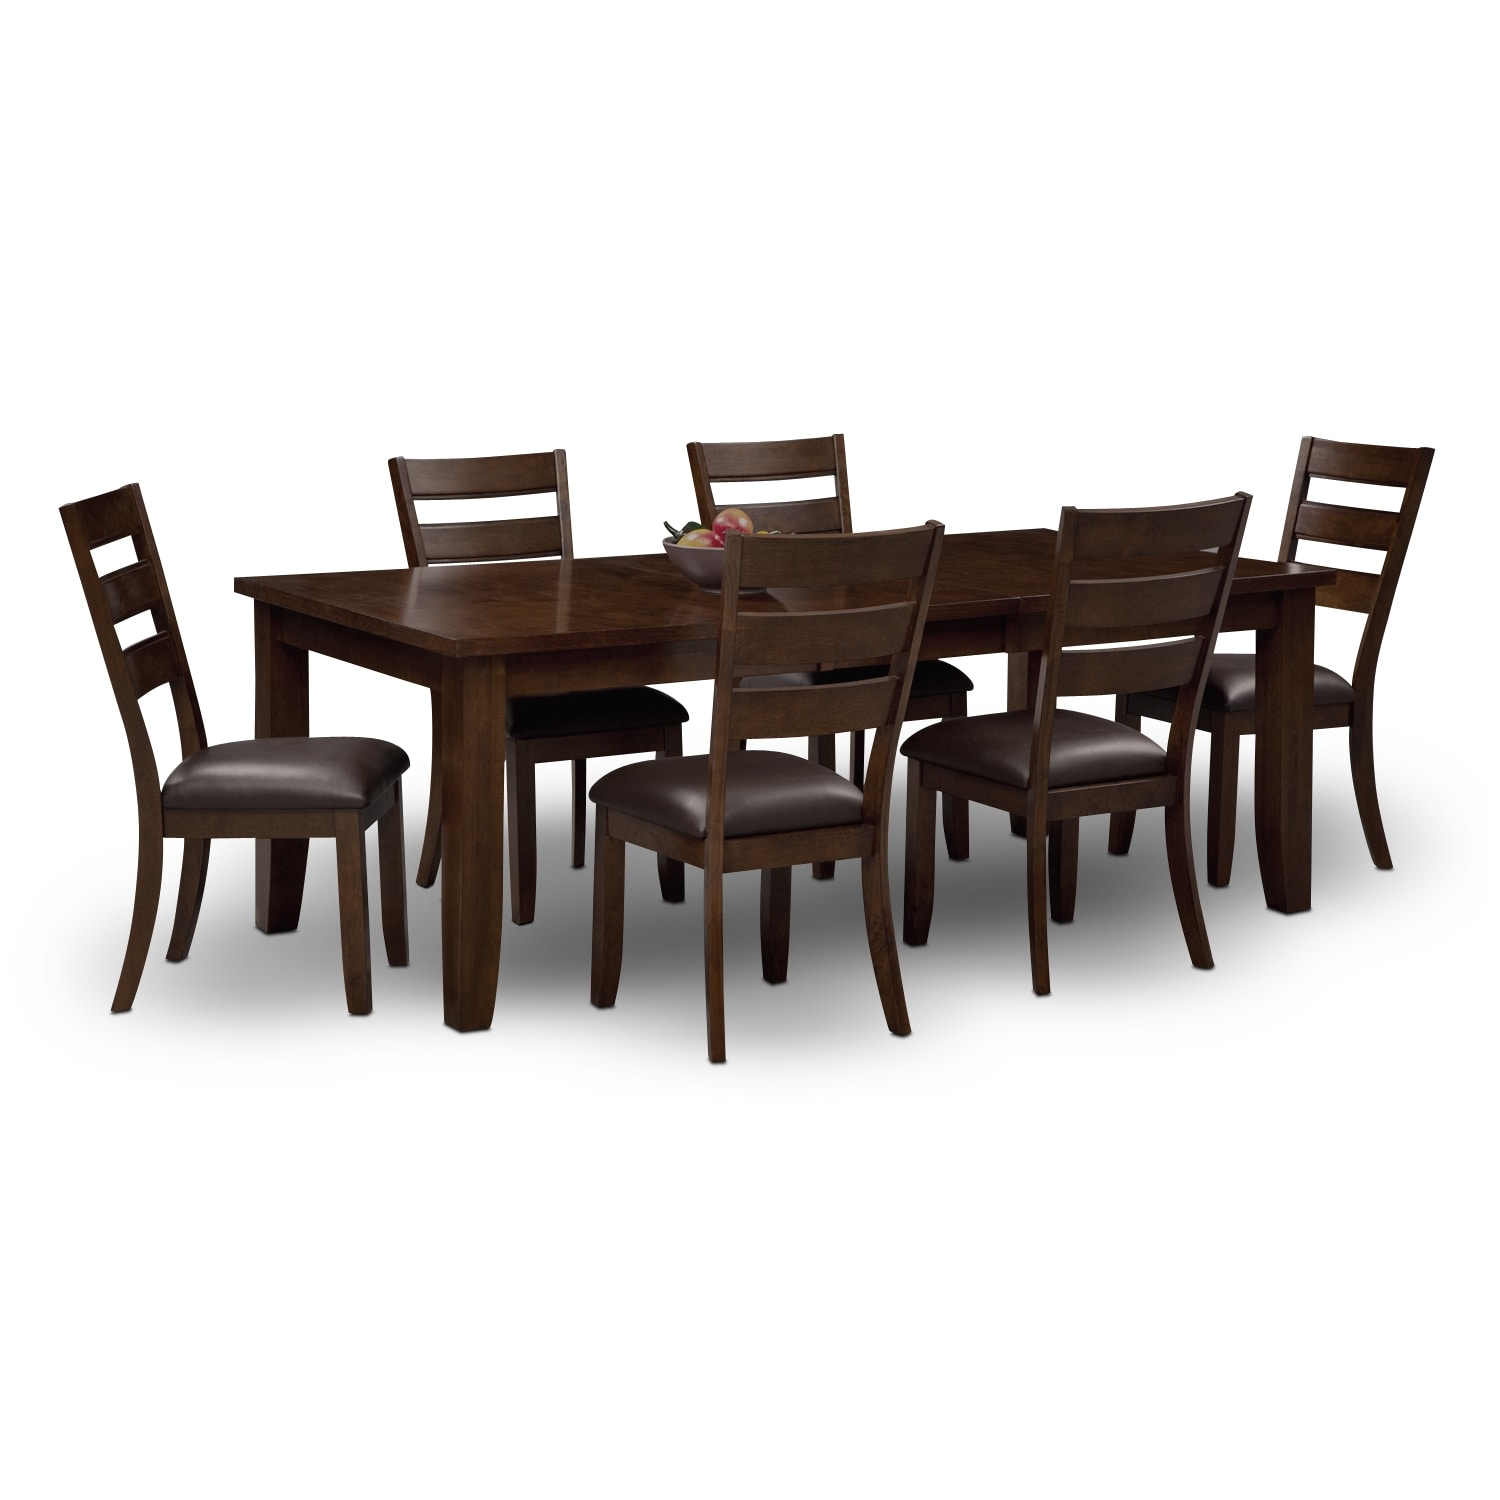 [Abaco 7 Pc. Dining Room]